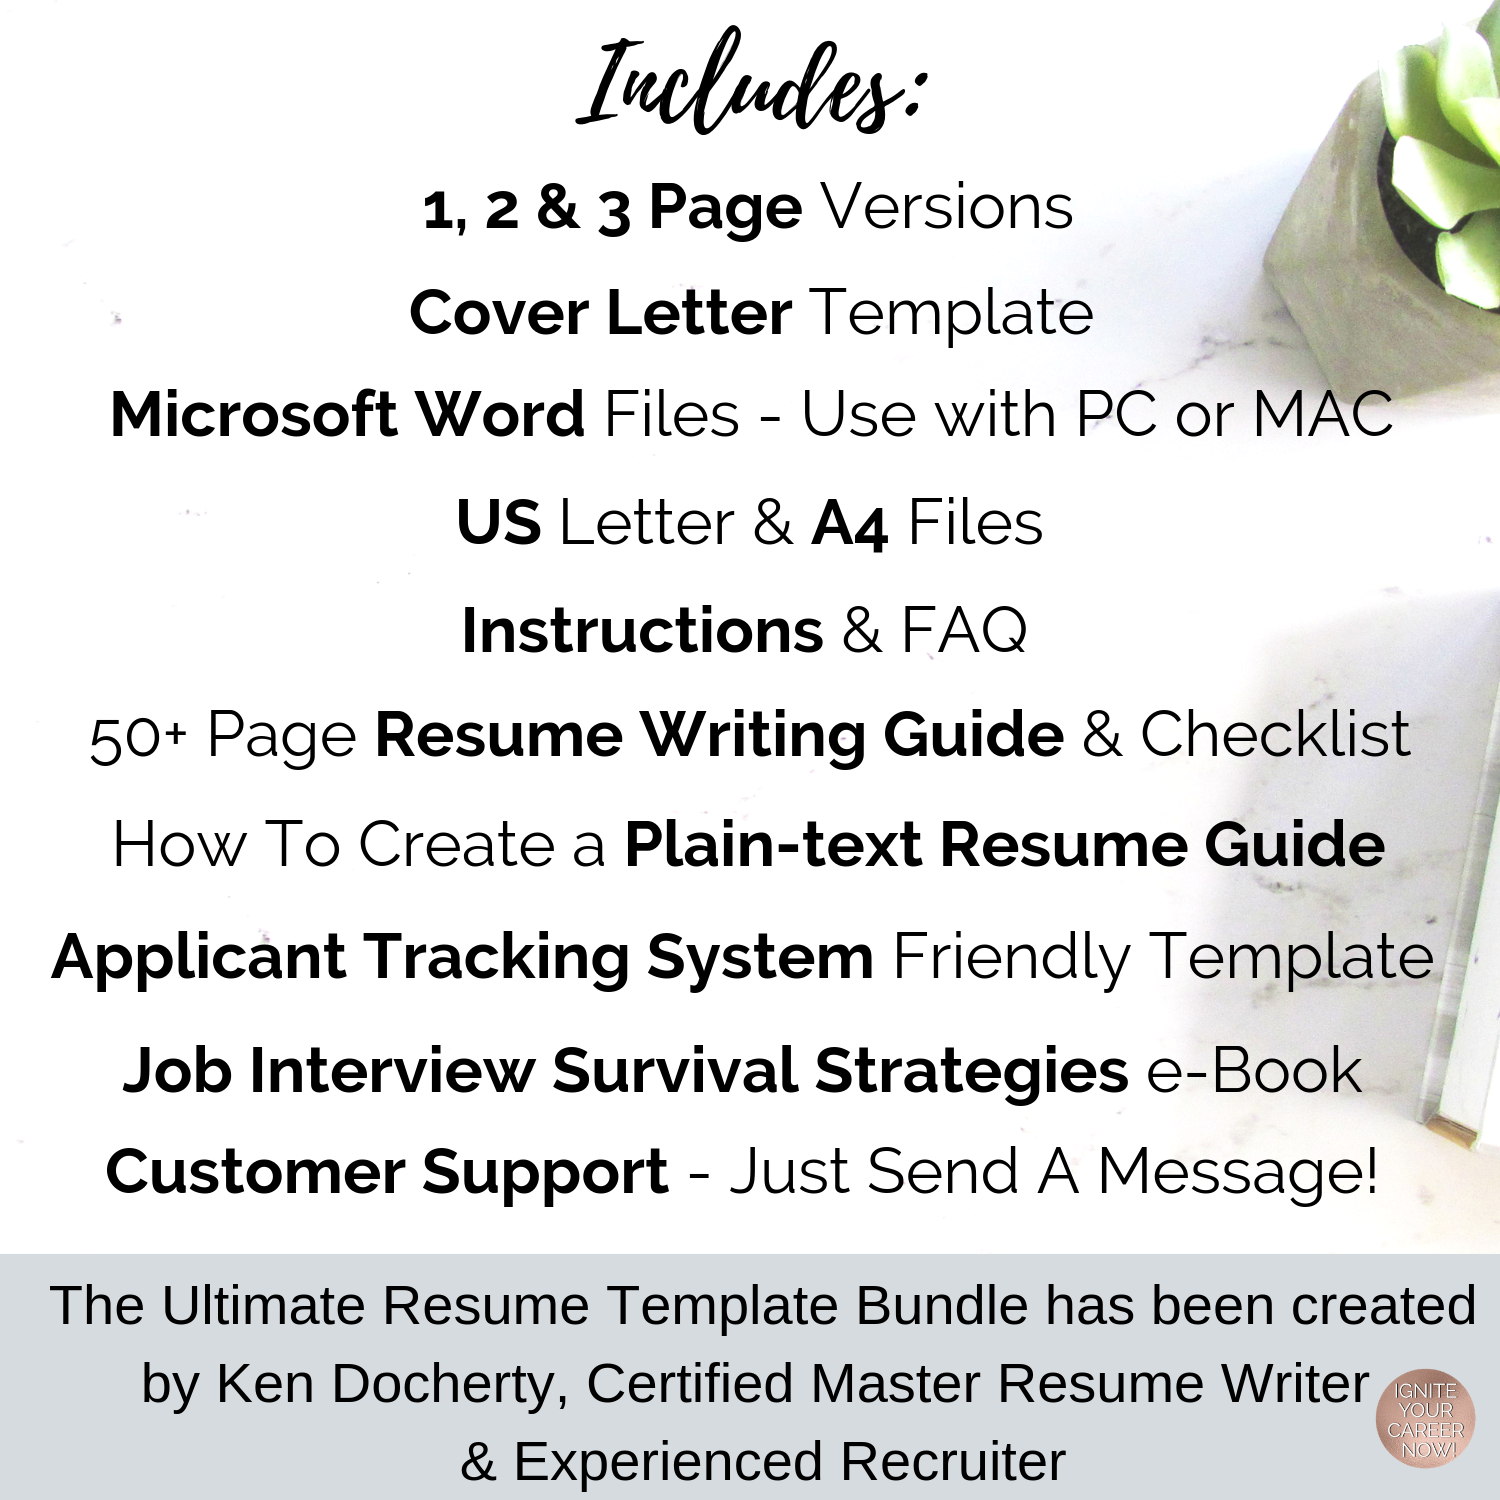 Teacher Resume Templates - California - by Ken Docherty, CMRW — Ken Docherty